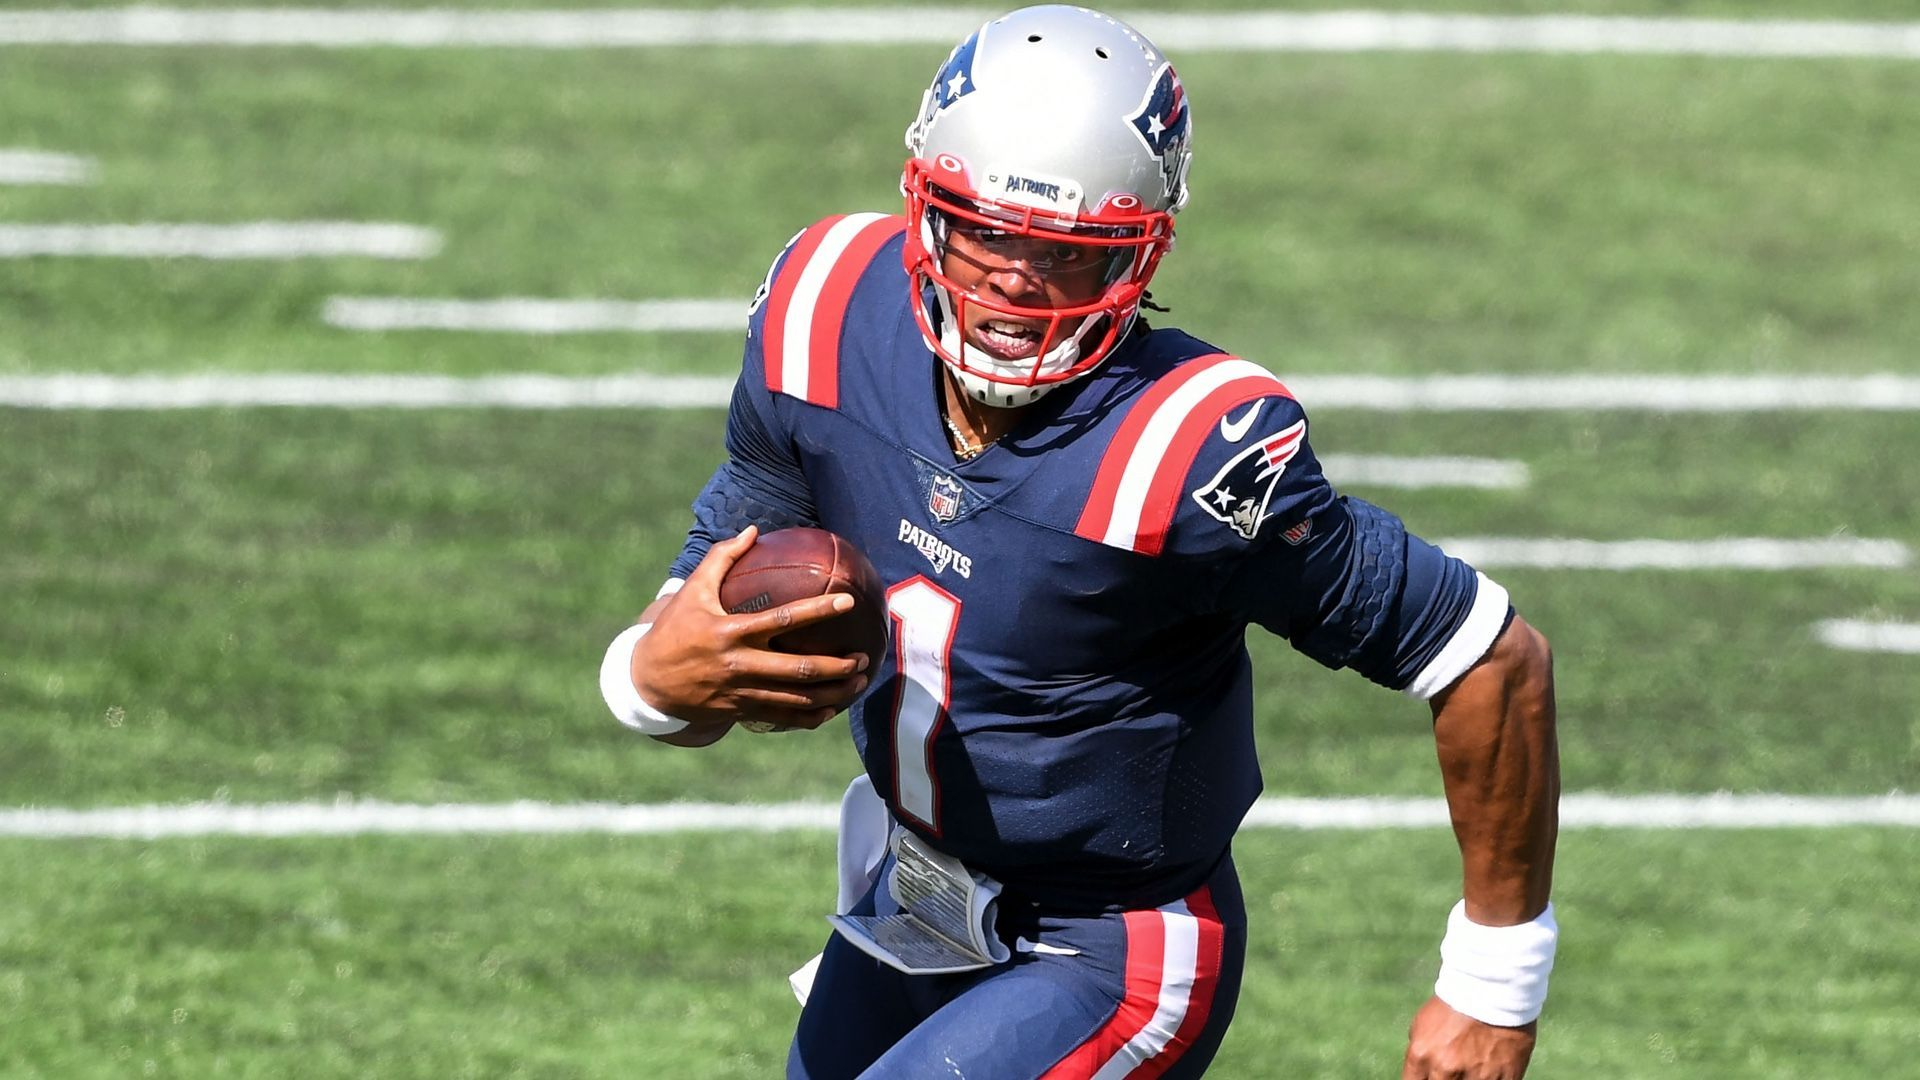 Cam Newton S Patriots Debut Features Late Scuffle With Dolphins In 2020 Fantasy Football Cam Newton Patriots